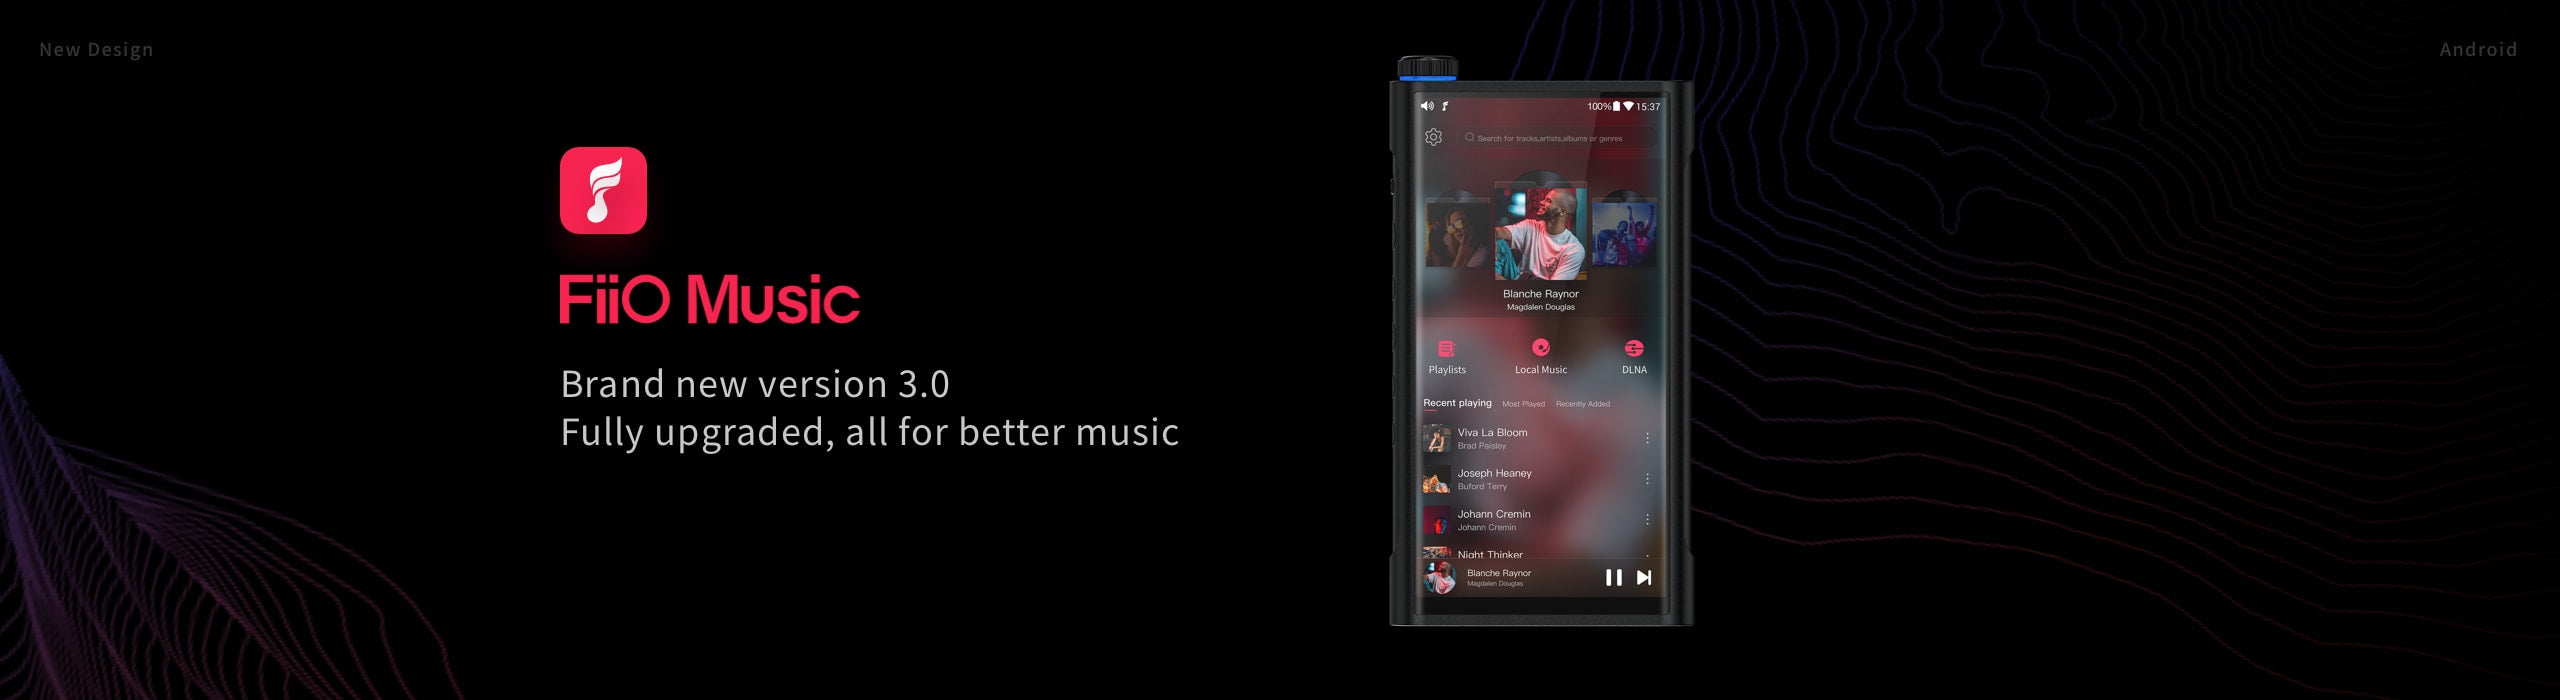 FiiO Music App V3.0.1 for Android devices, X series and M series players update now!